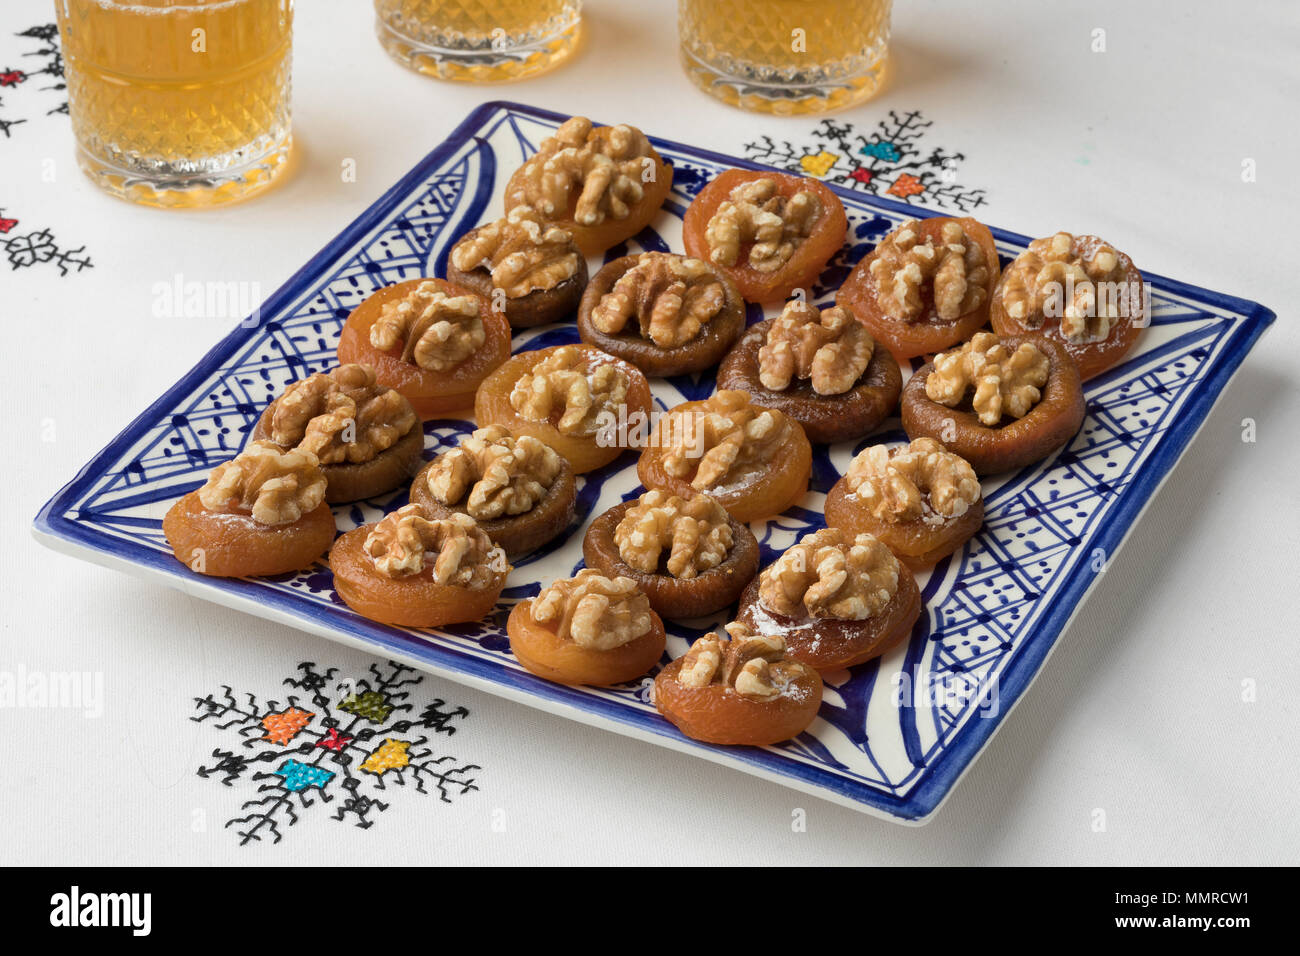 Dish with Moroccan dried apricots decorated with a walnuts and tea on a embroidered tablecloth - Stock Image